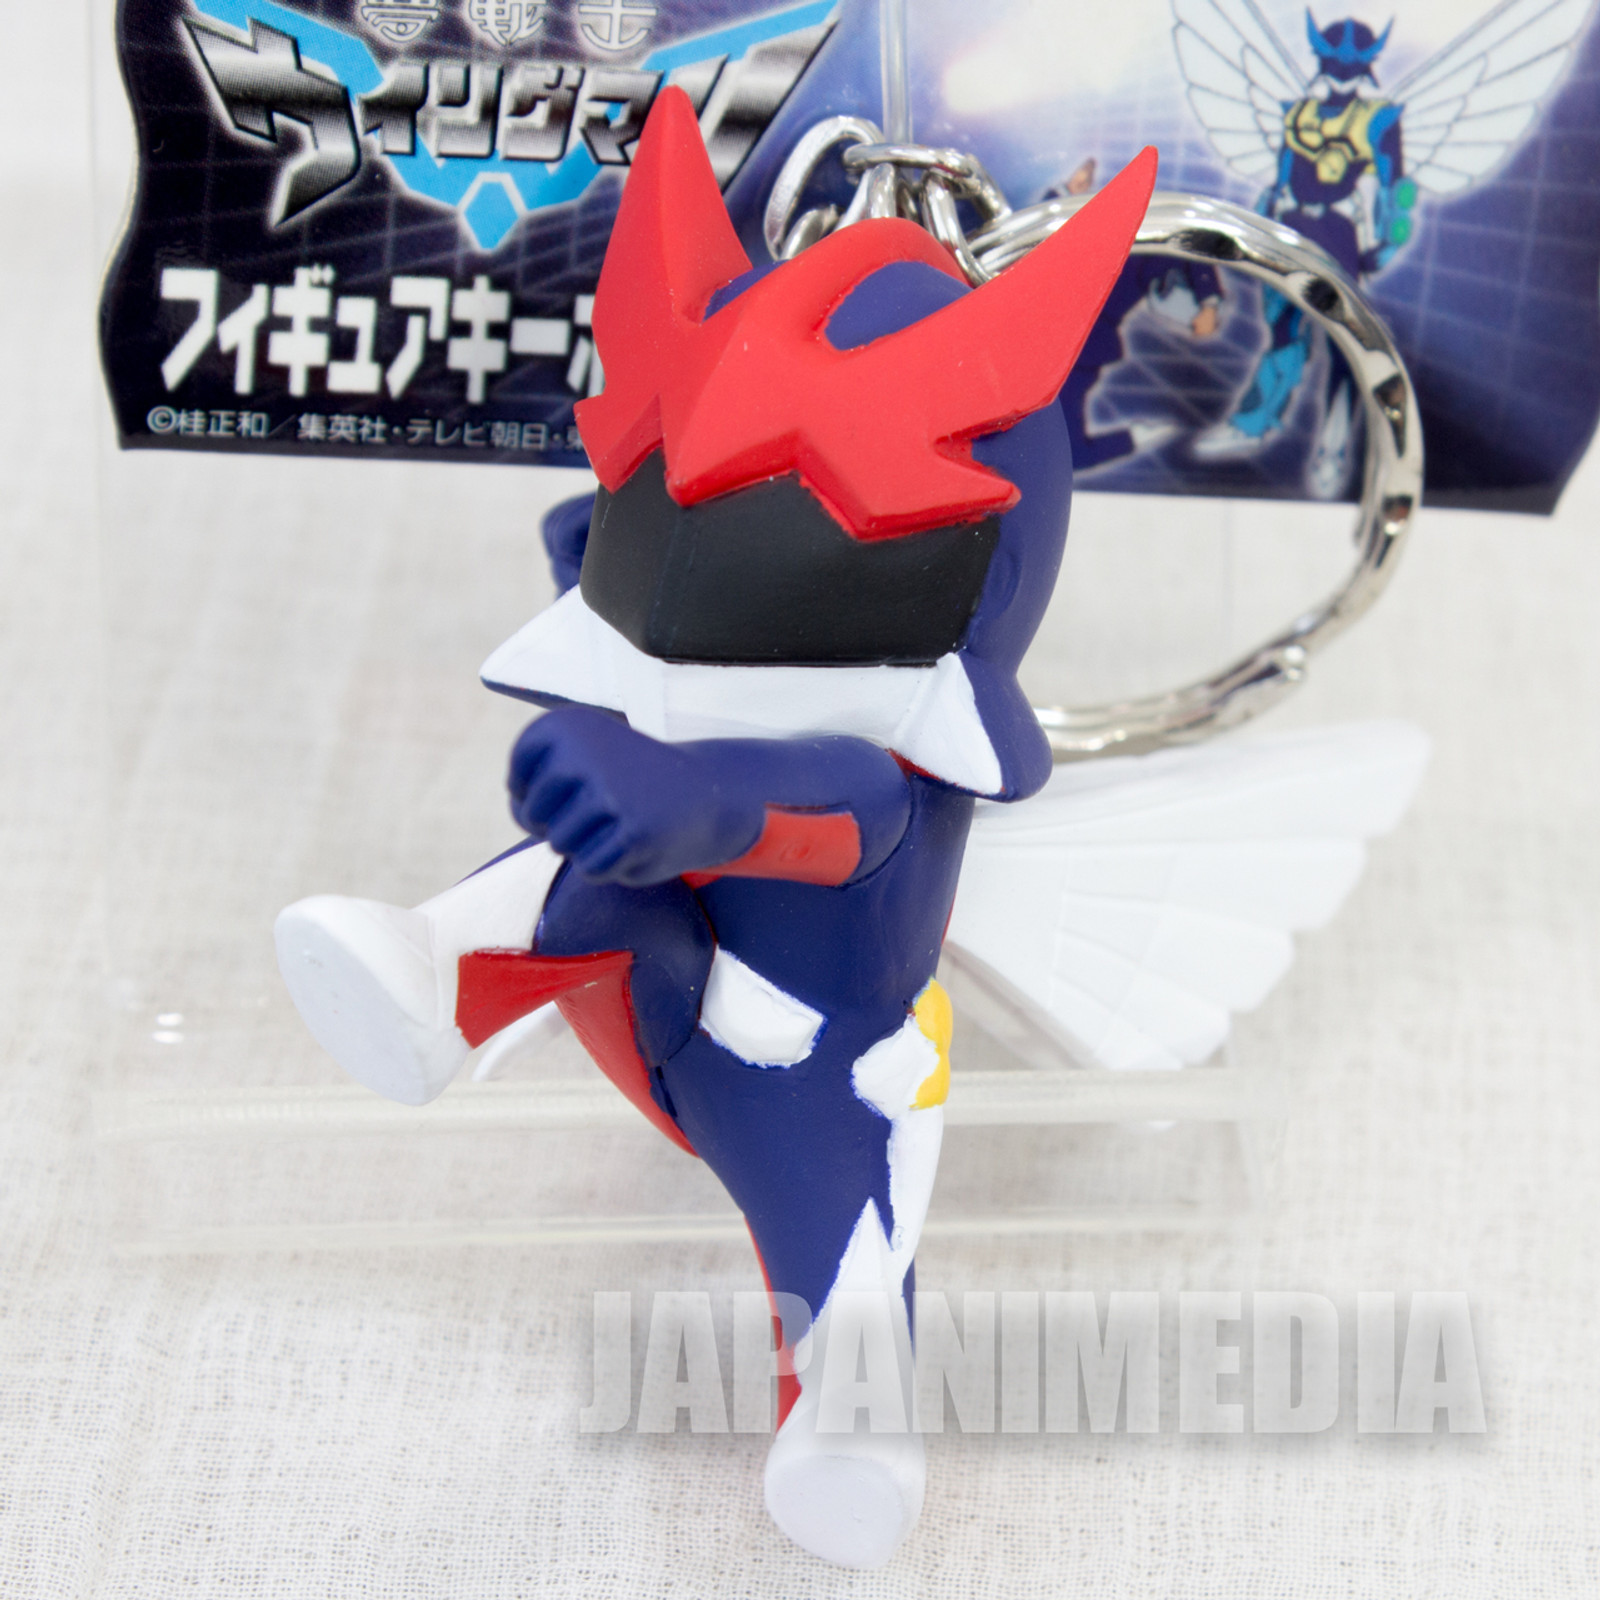 WINGMAN Red ver. Figure Keychain Banpresto JAPAN ANIME MANGA